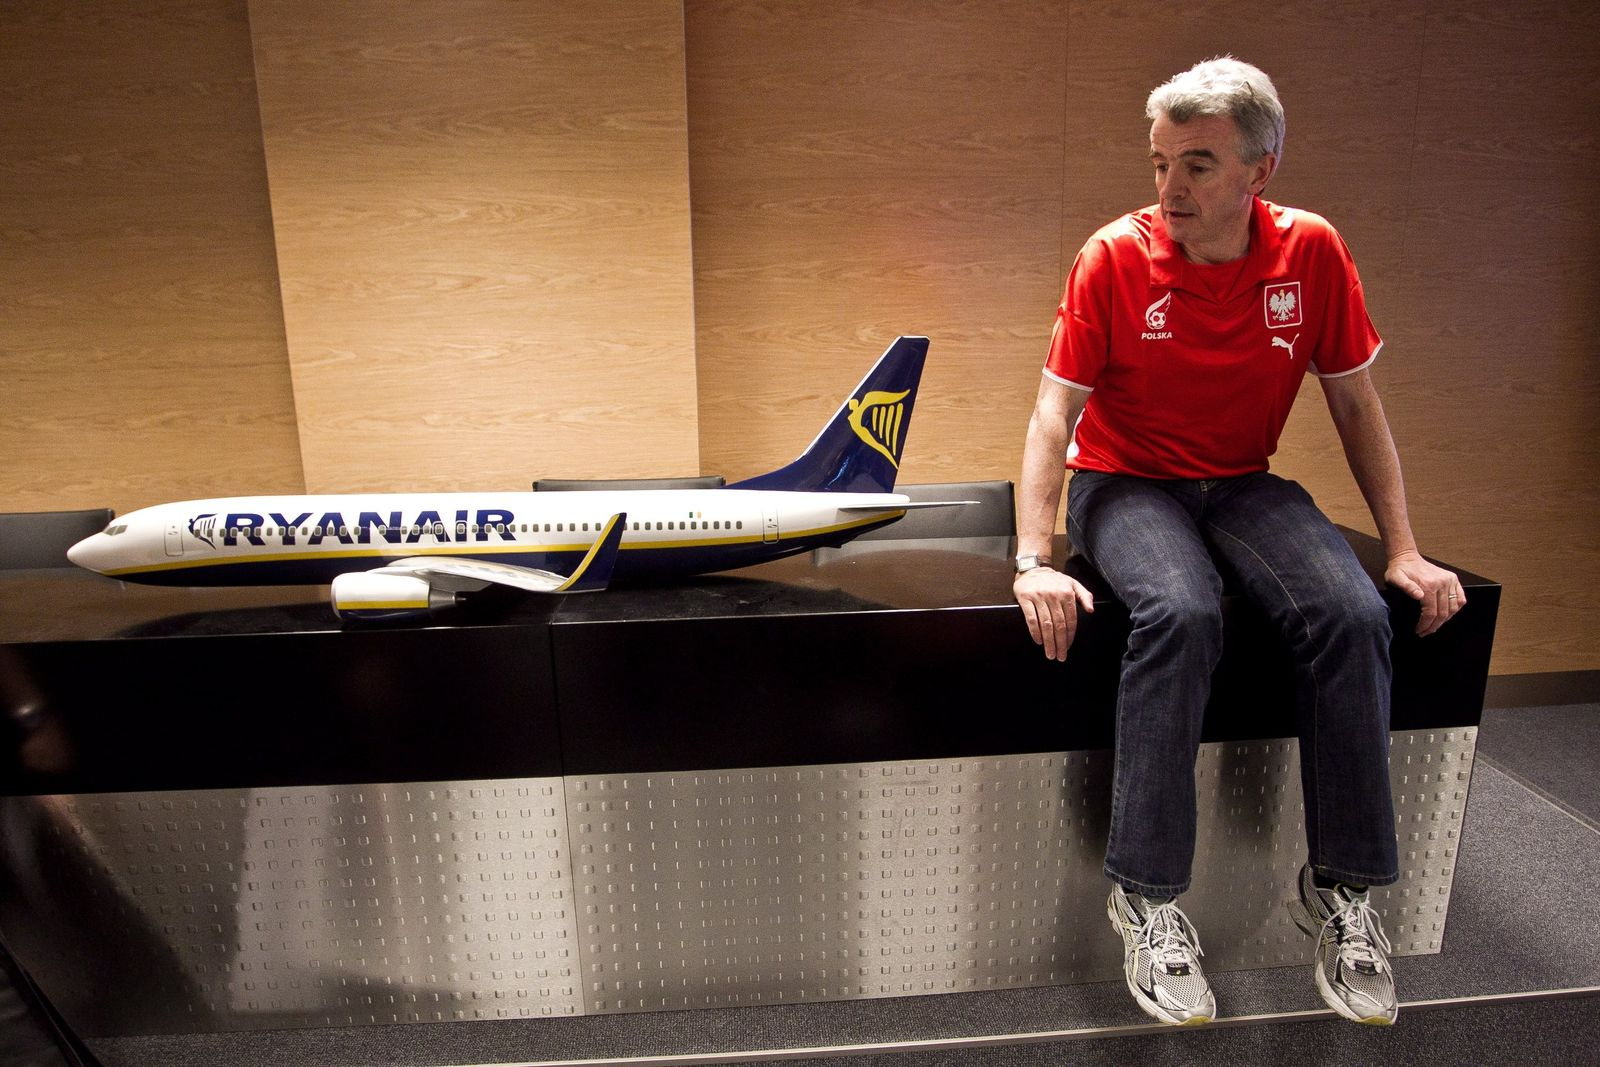 Ryanair press conference at Wroclaw Airport